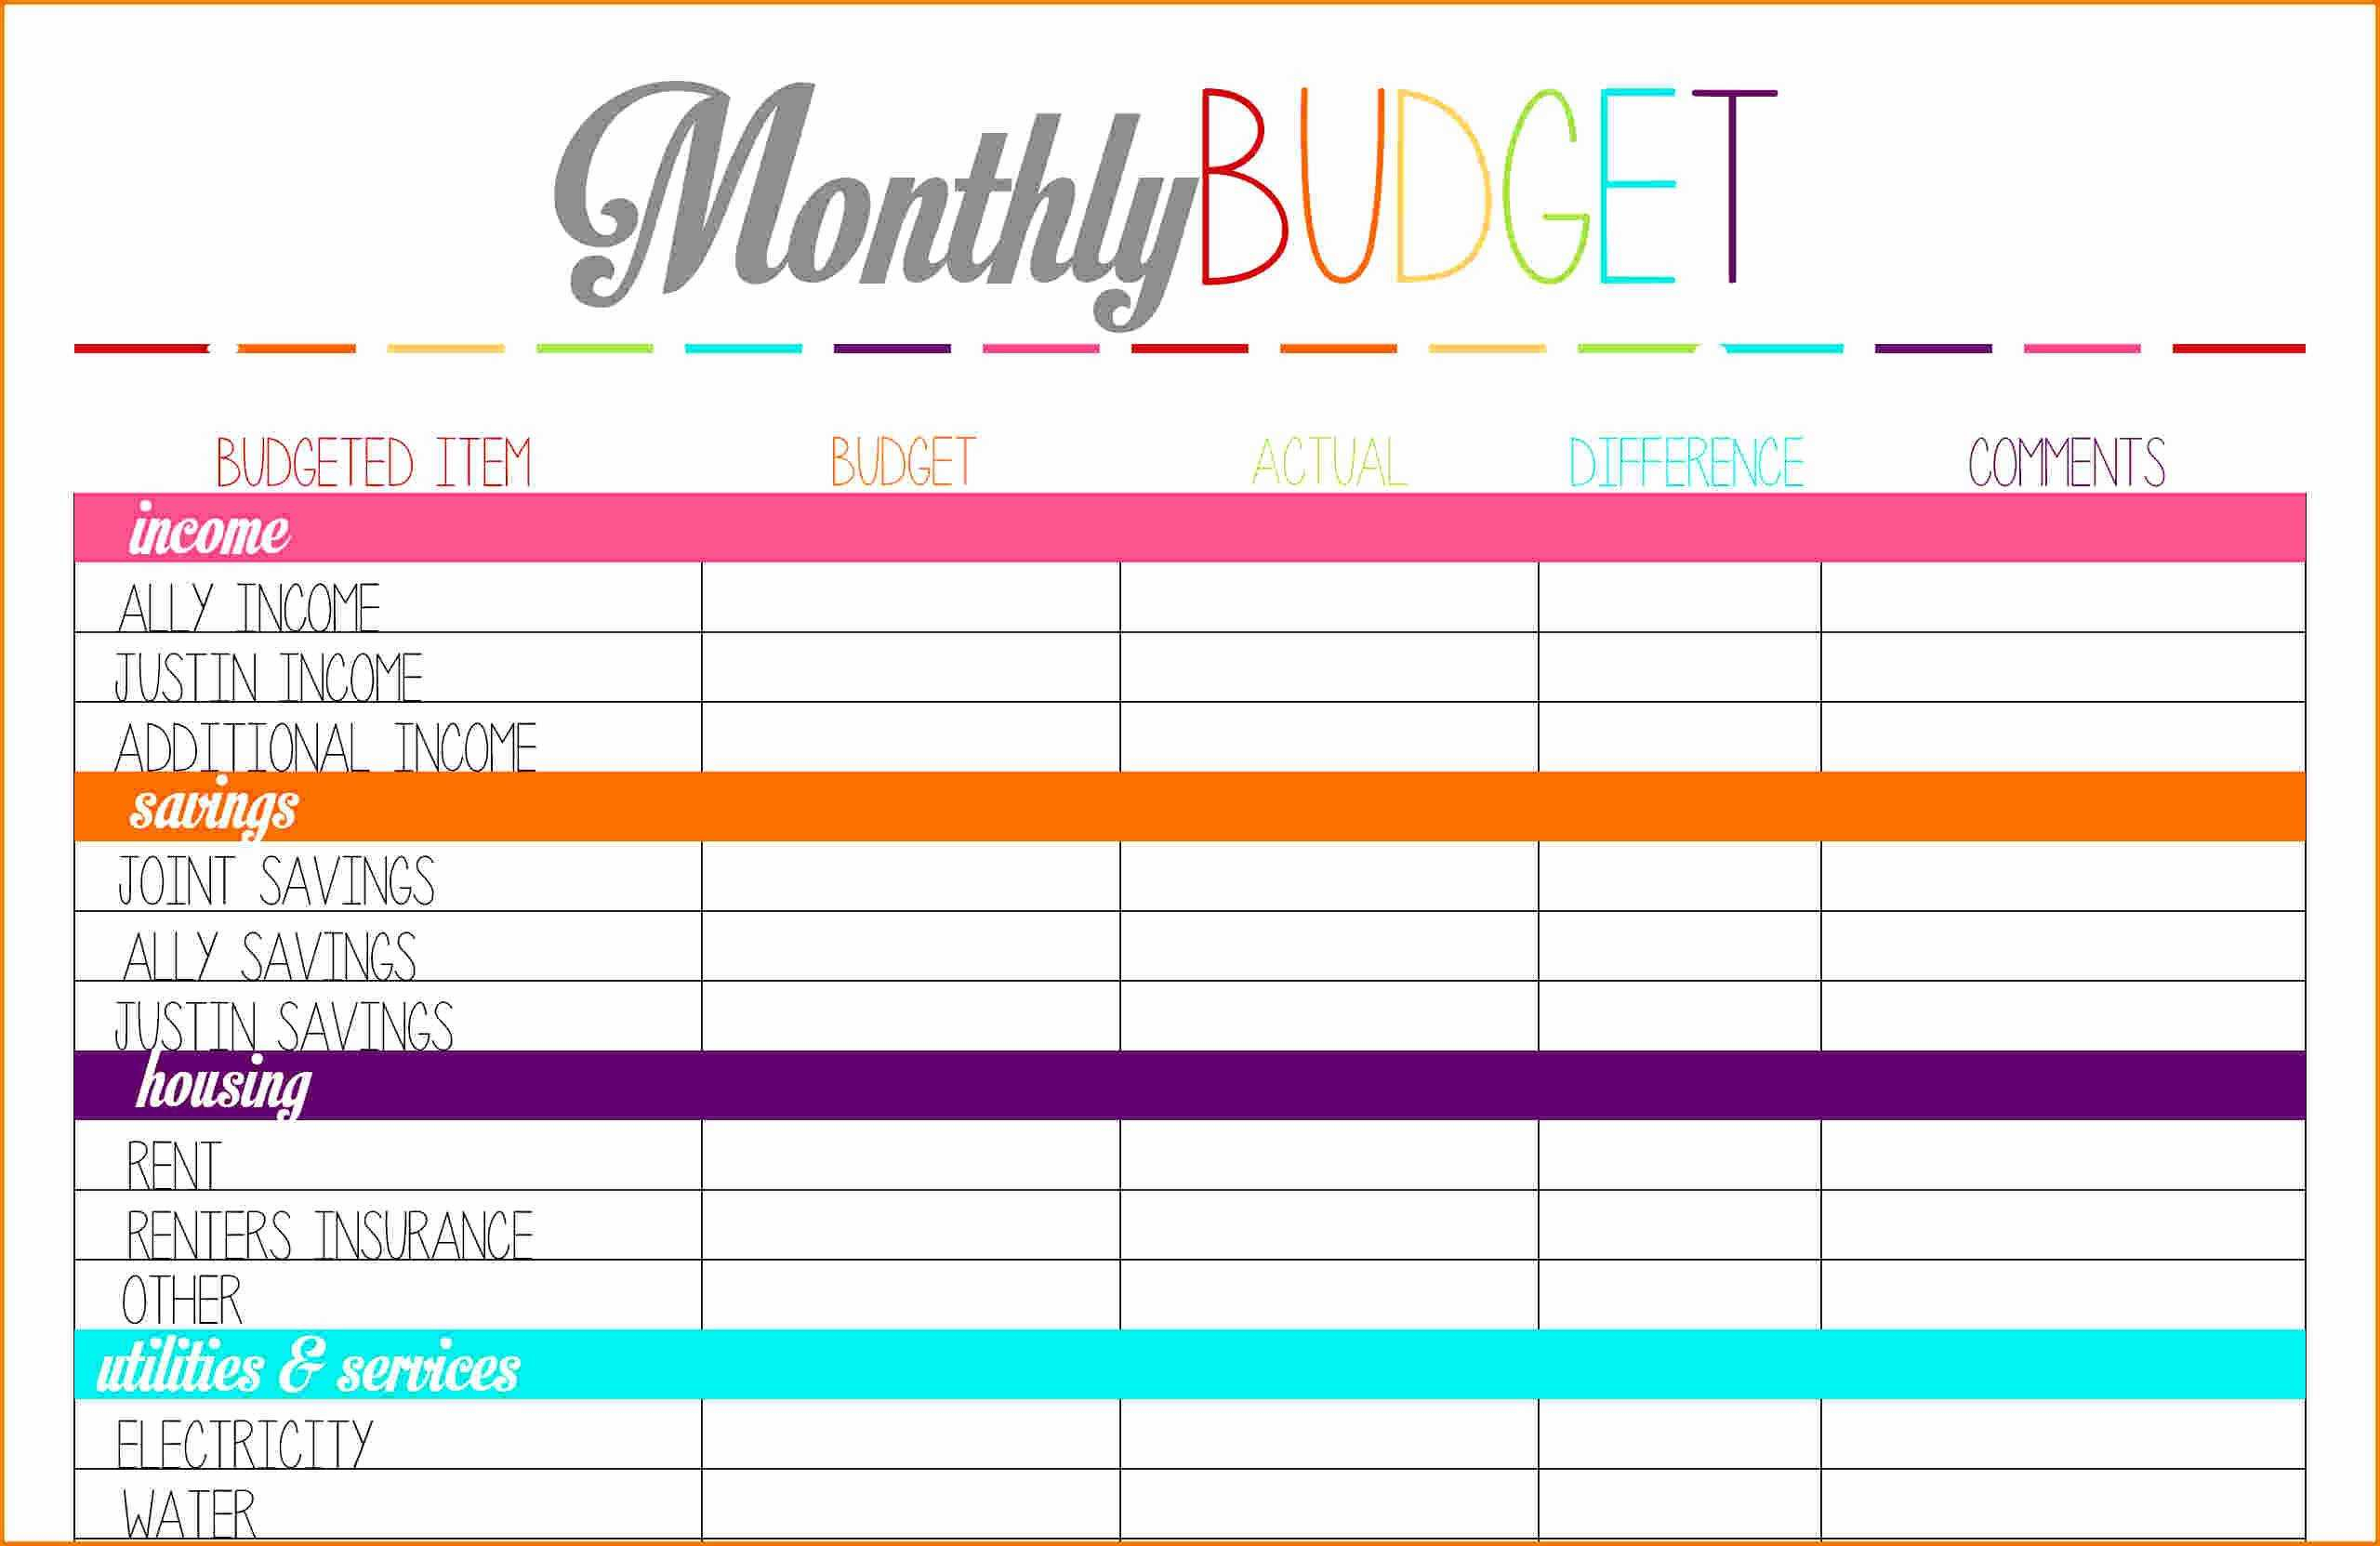 Monthly Budget Sheet Template Free With Financial Planning - Free Printable Finance Sheets